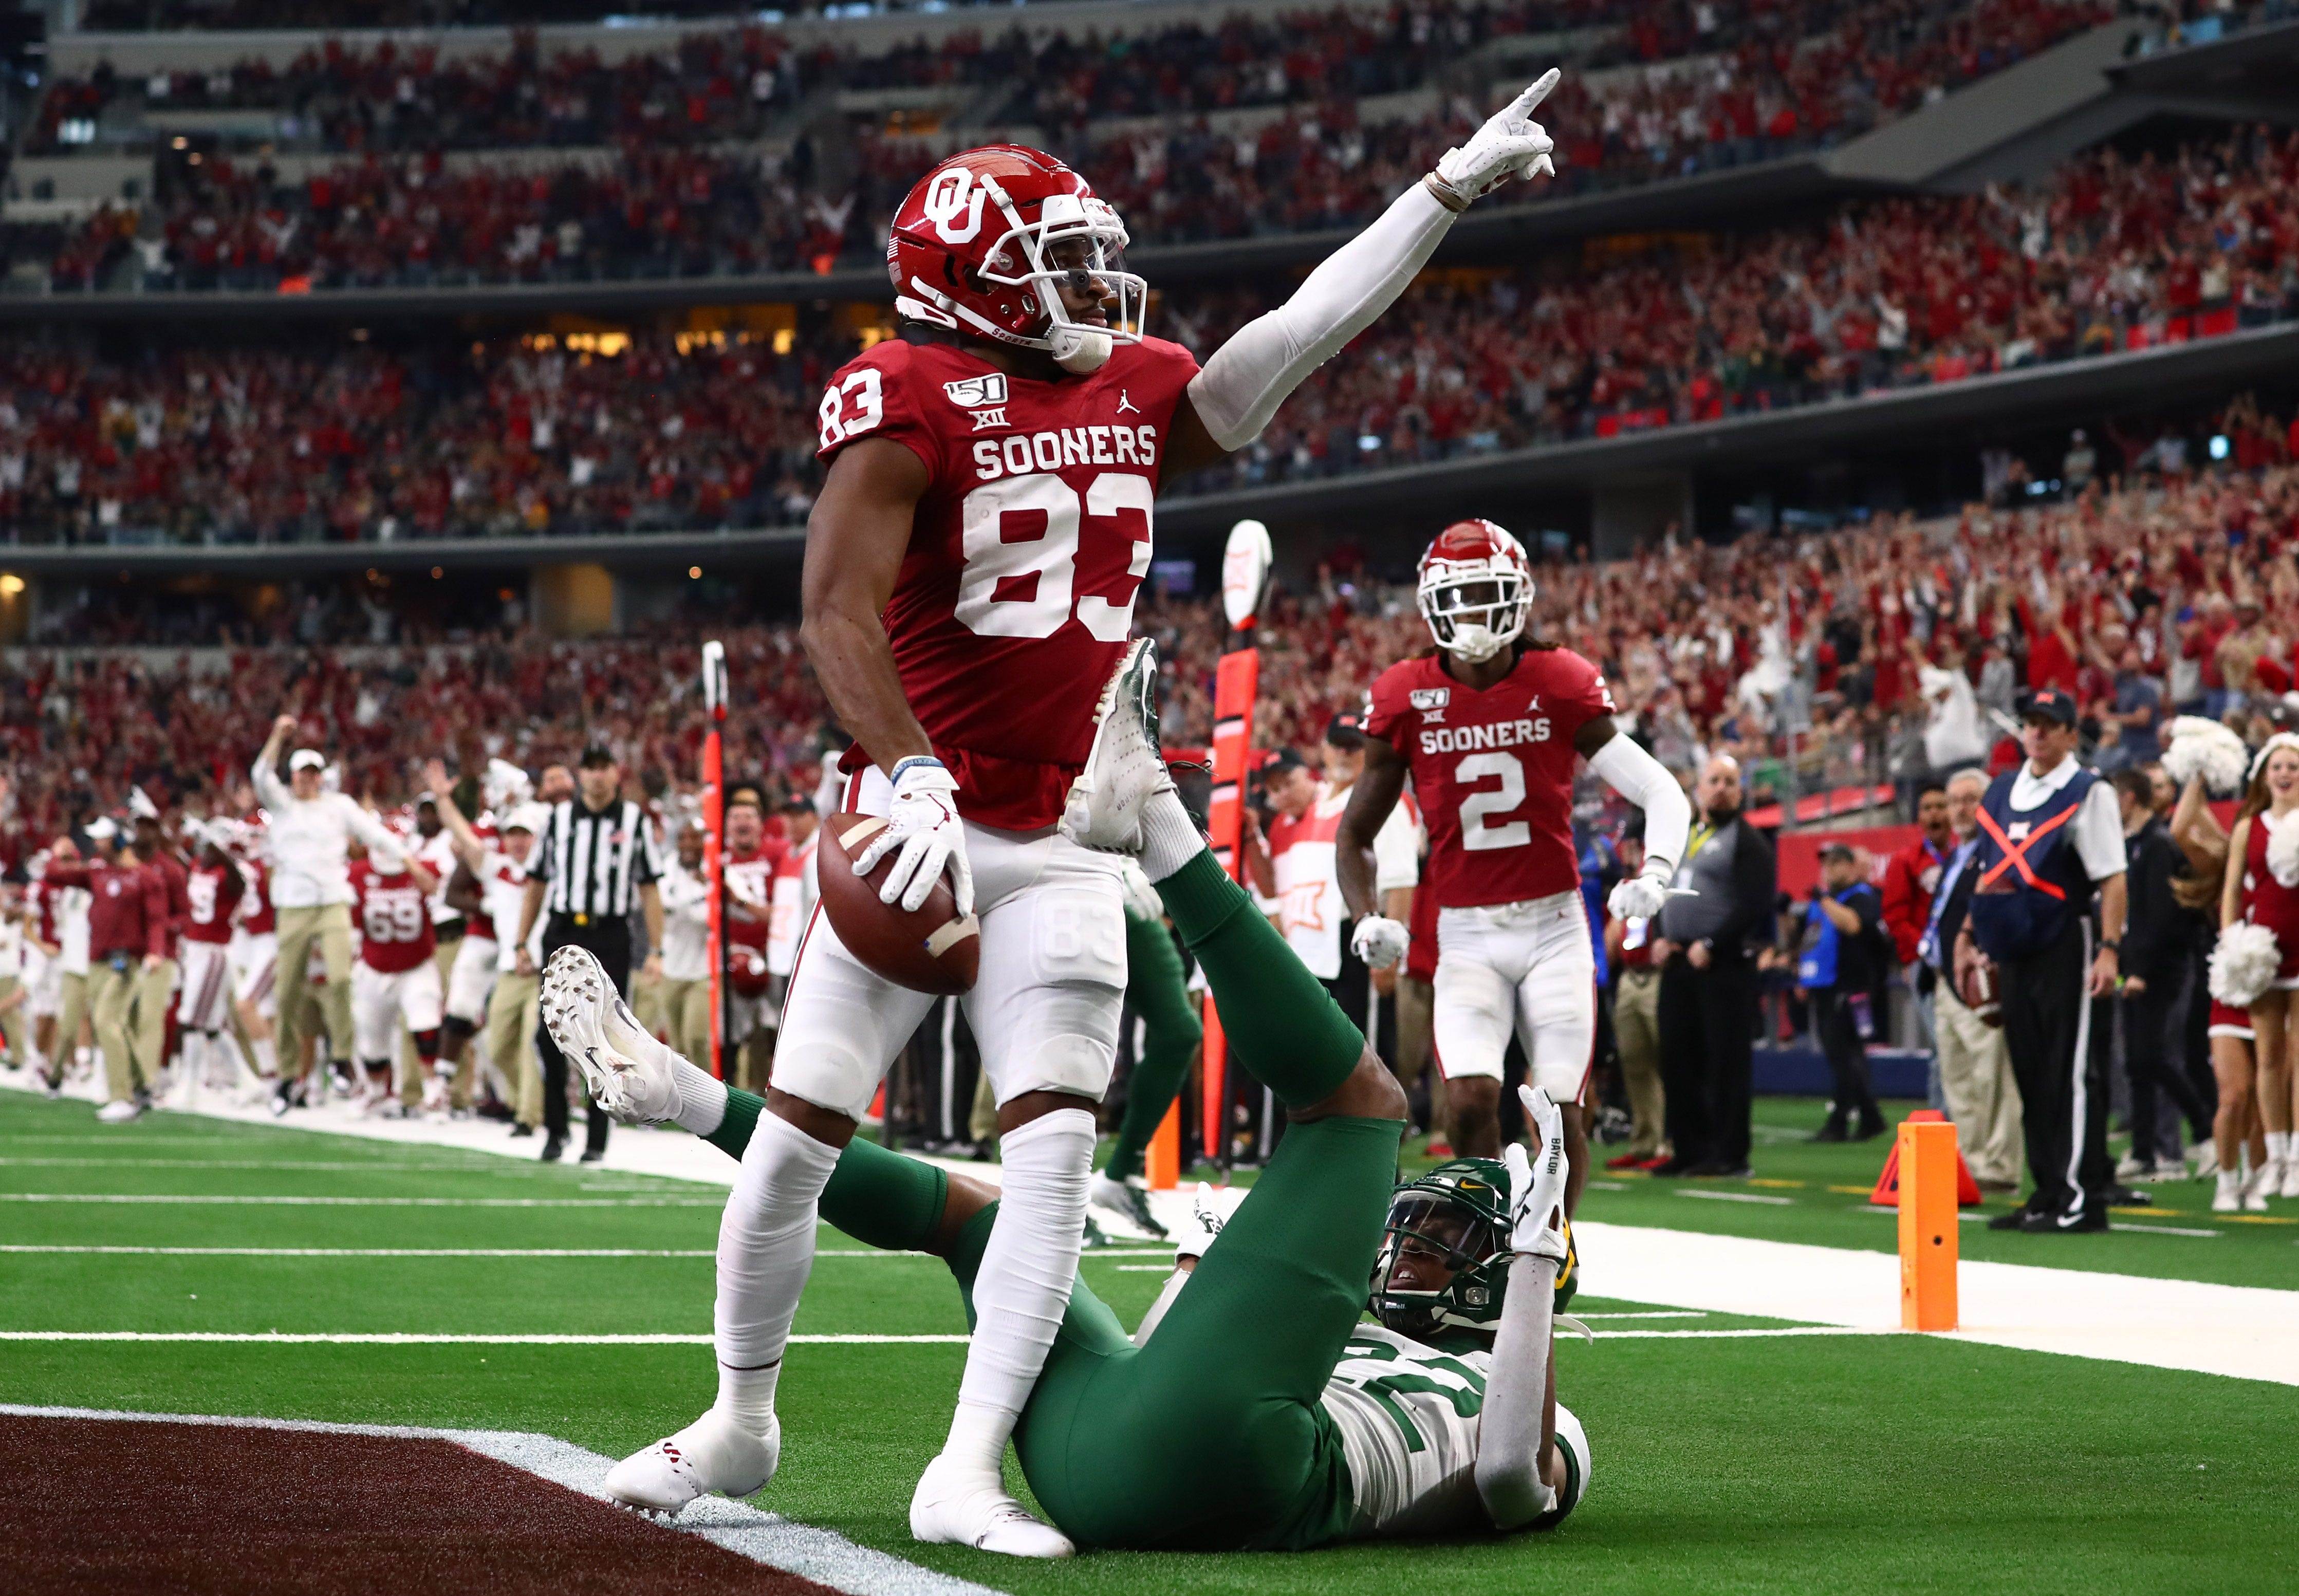 Oklahoma boosts playoff hopes after beating Baylor for its fifth Big 12 title in a row